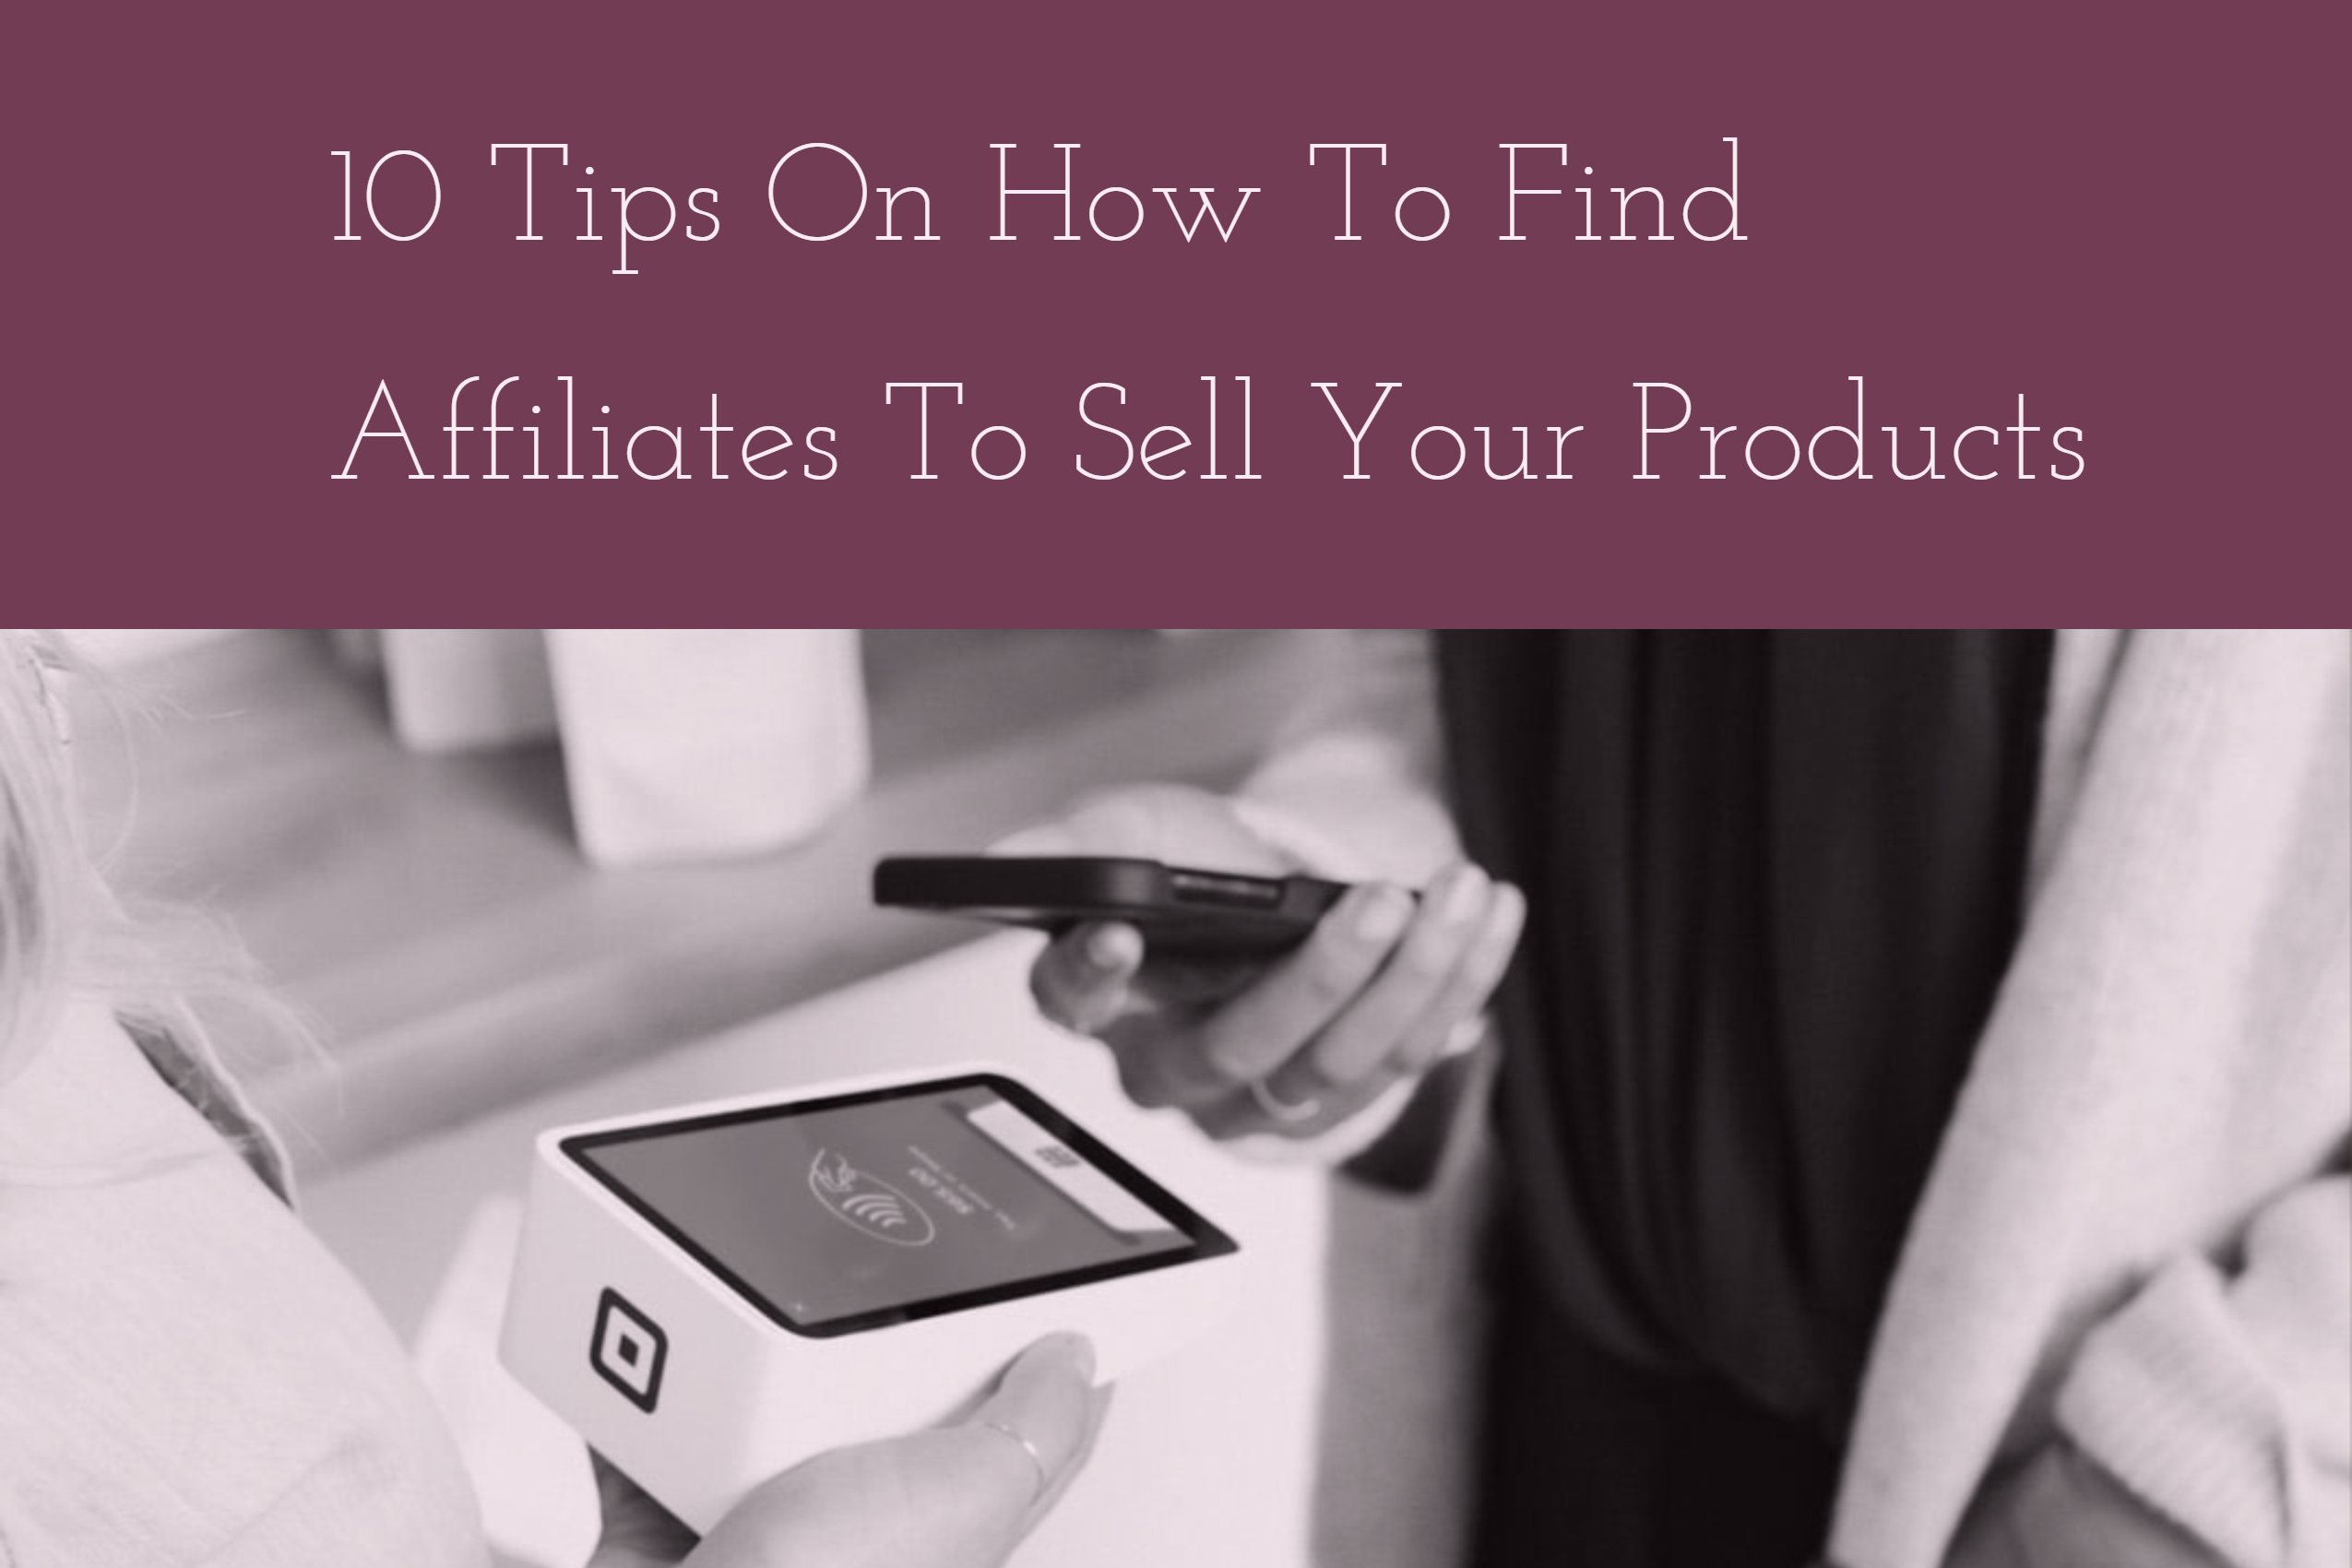 10 Tips On How To Find Affiliates To Sell Your Products (1)